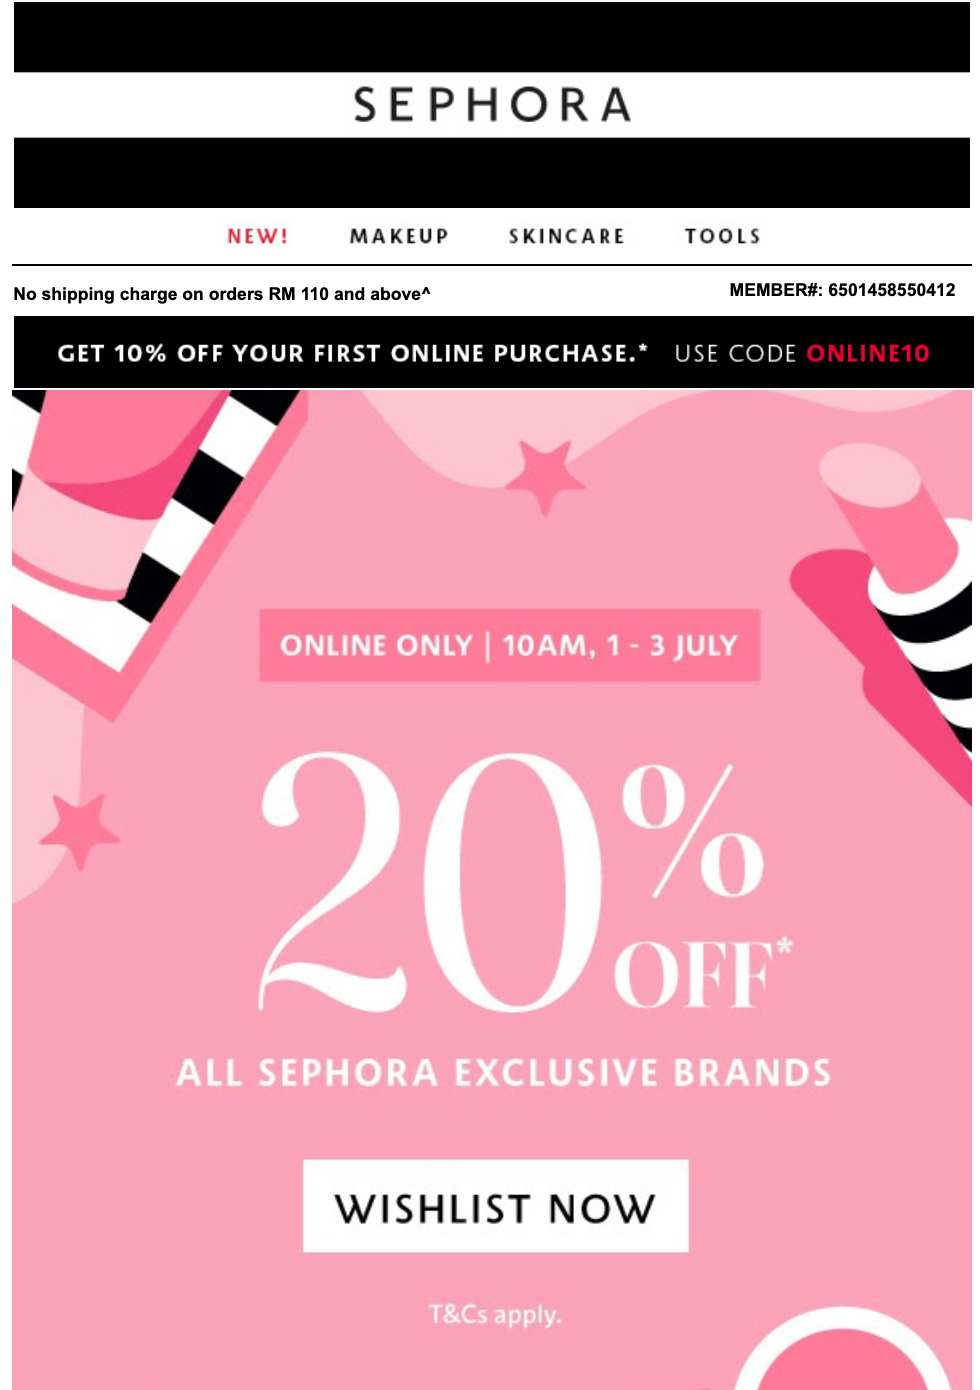 sephora malaysia limited offer website conversion rate